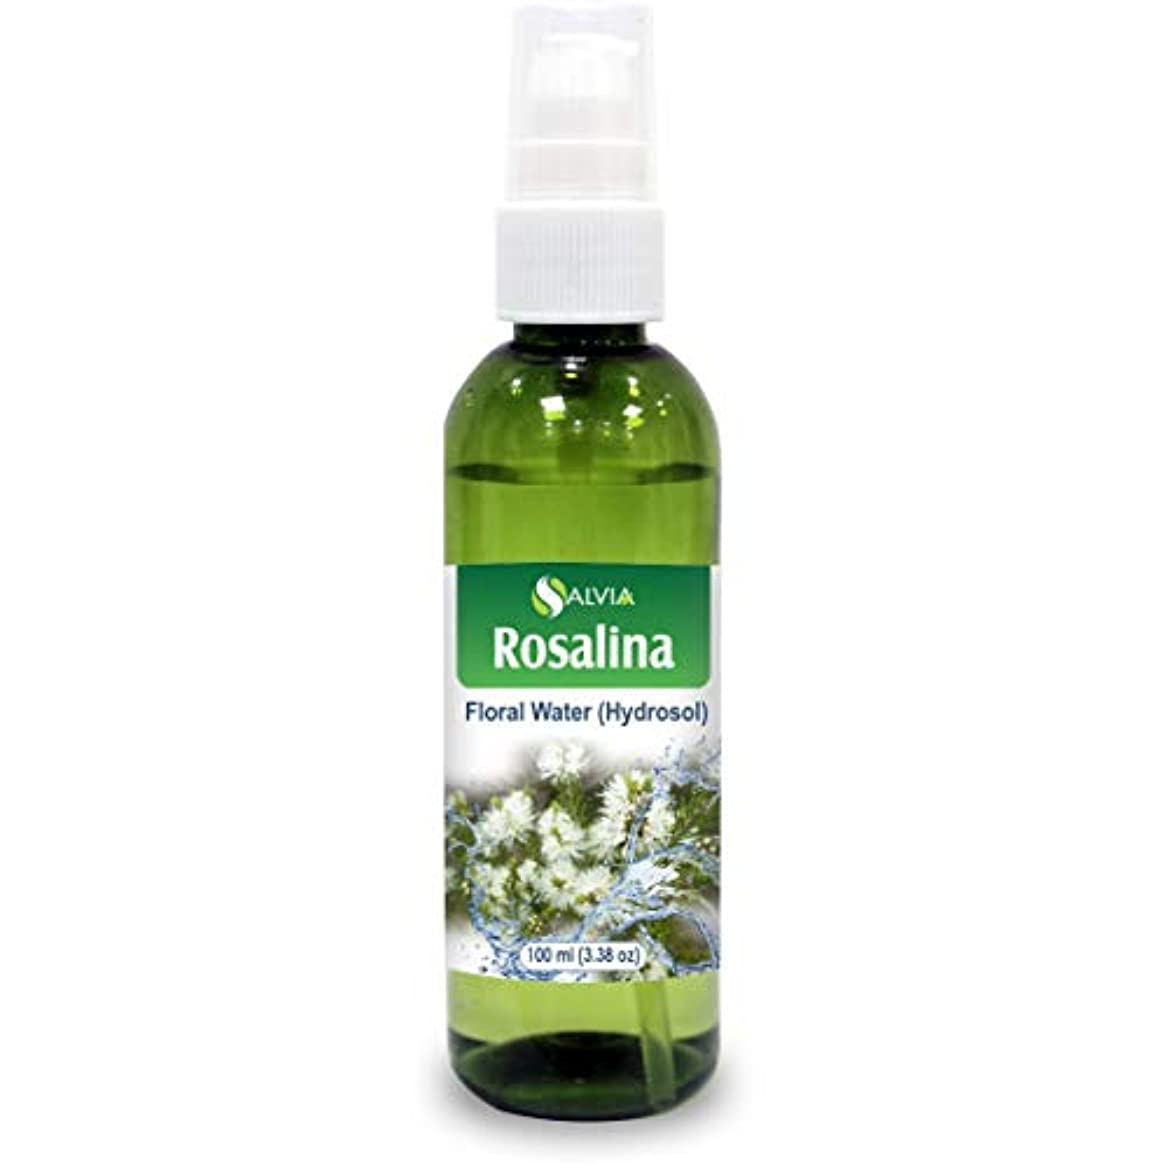 インチ幸運な未接続Rosalina Oil Floral Water 100ml (Hydrosol) 100% Pure And Natural